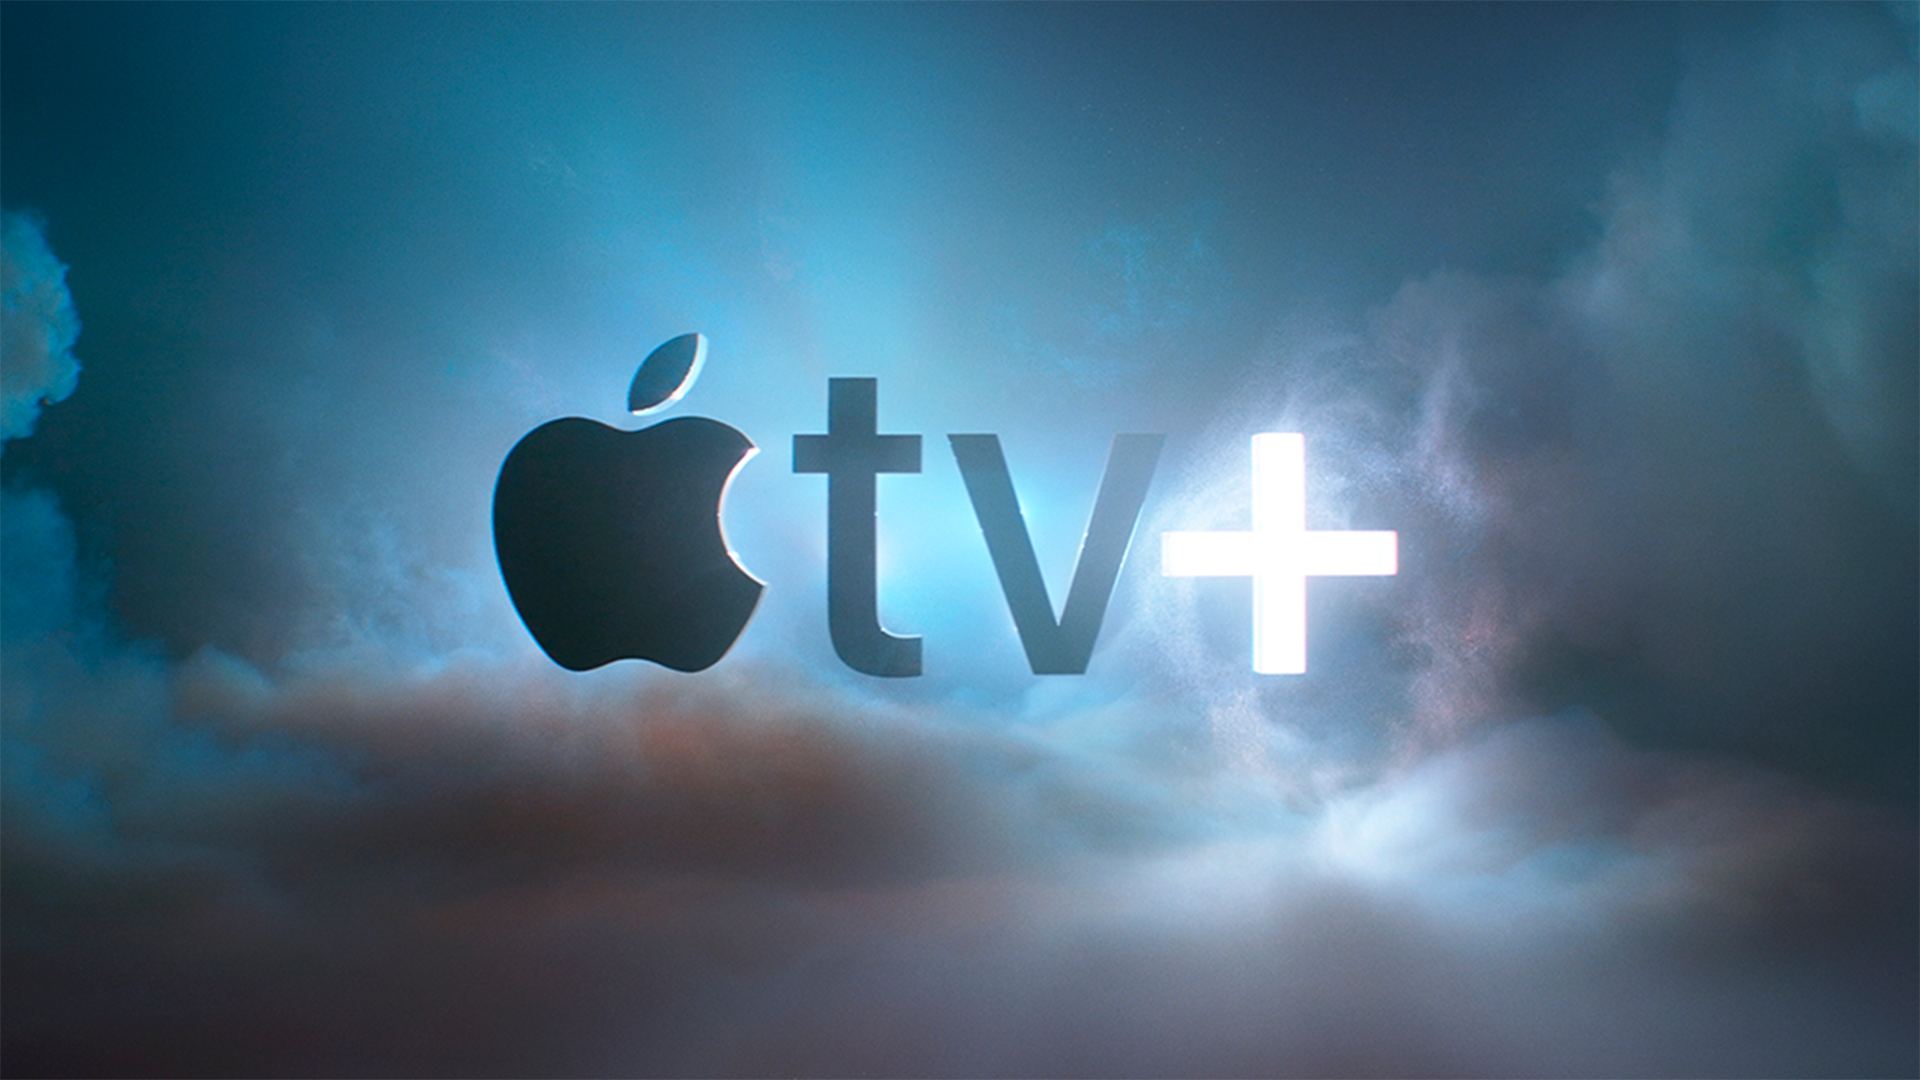 photo of Apple TV+ acquires movie rights to 'Cherry' with Tom Holland and Ciara Bravo for $40 million image